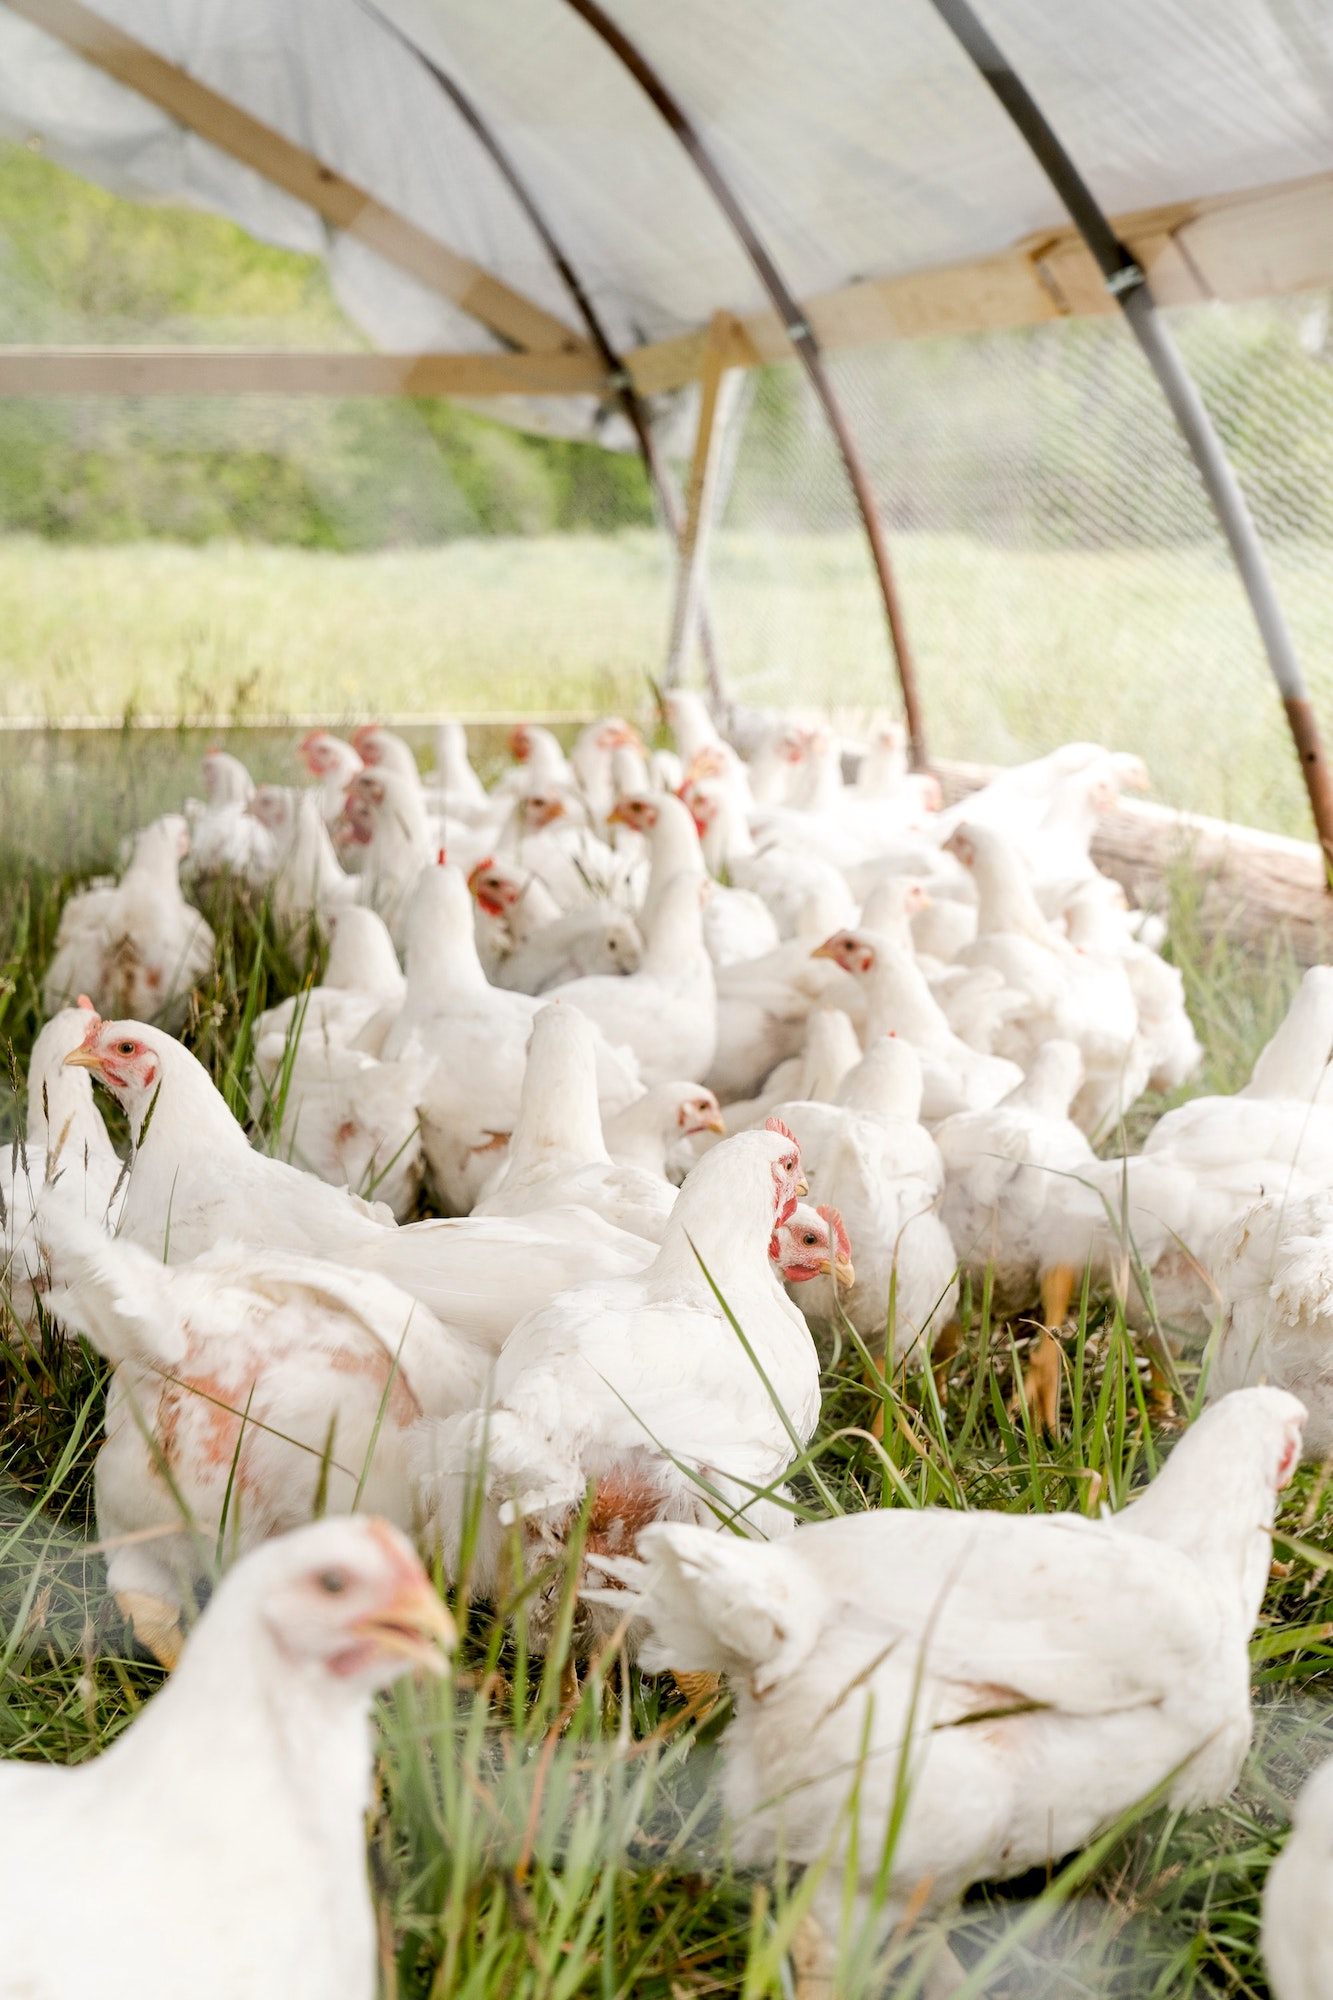 Chickens have also been impacted by the problems in meat industry and thus requires a closer look at how to sustainably operate poultry productions